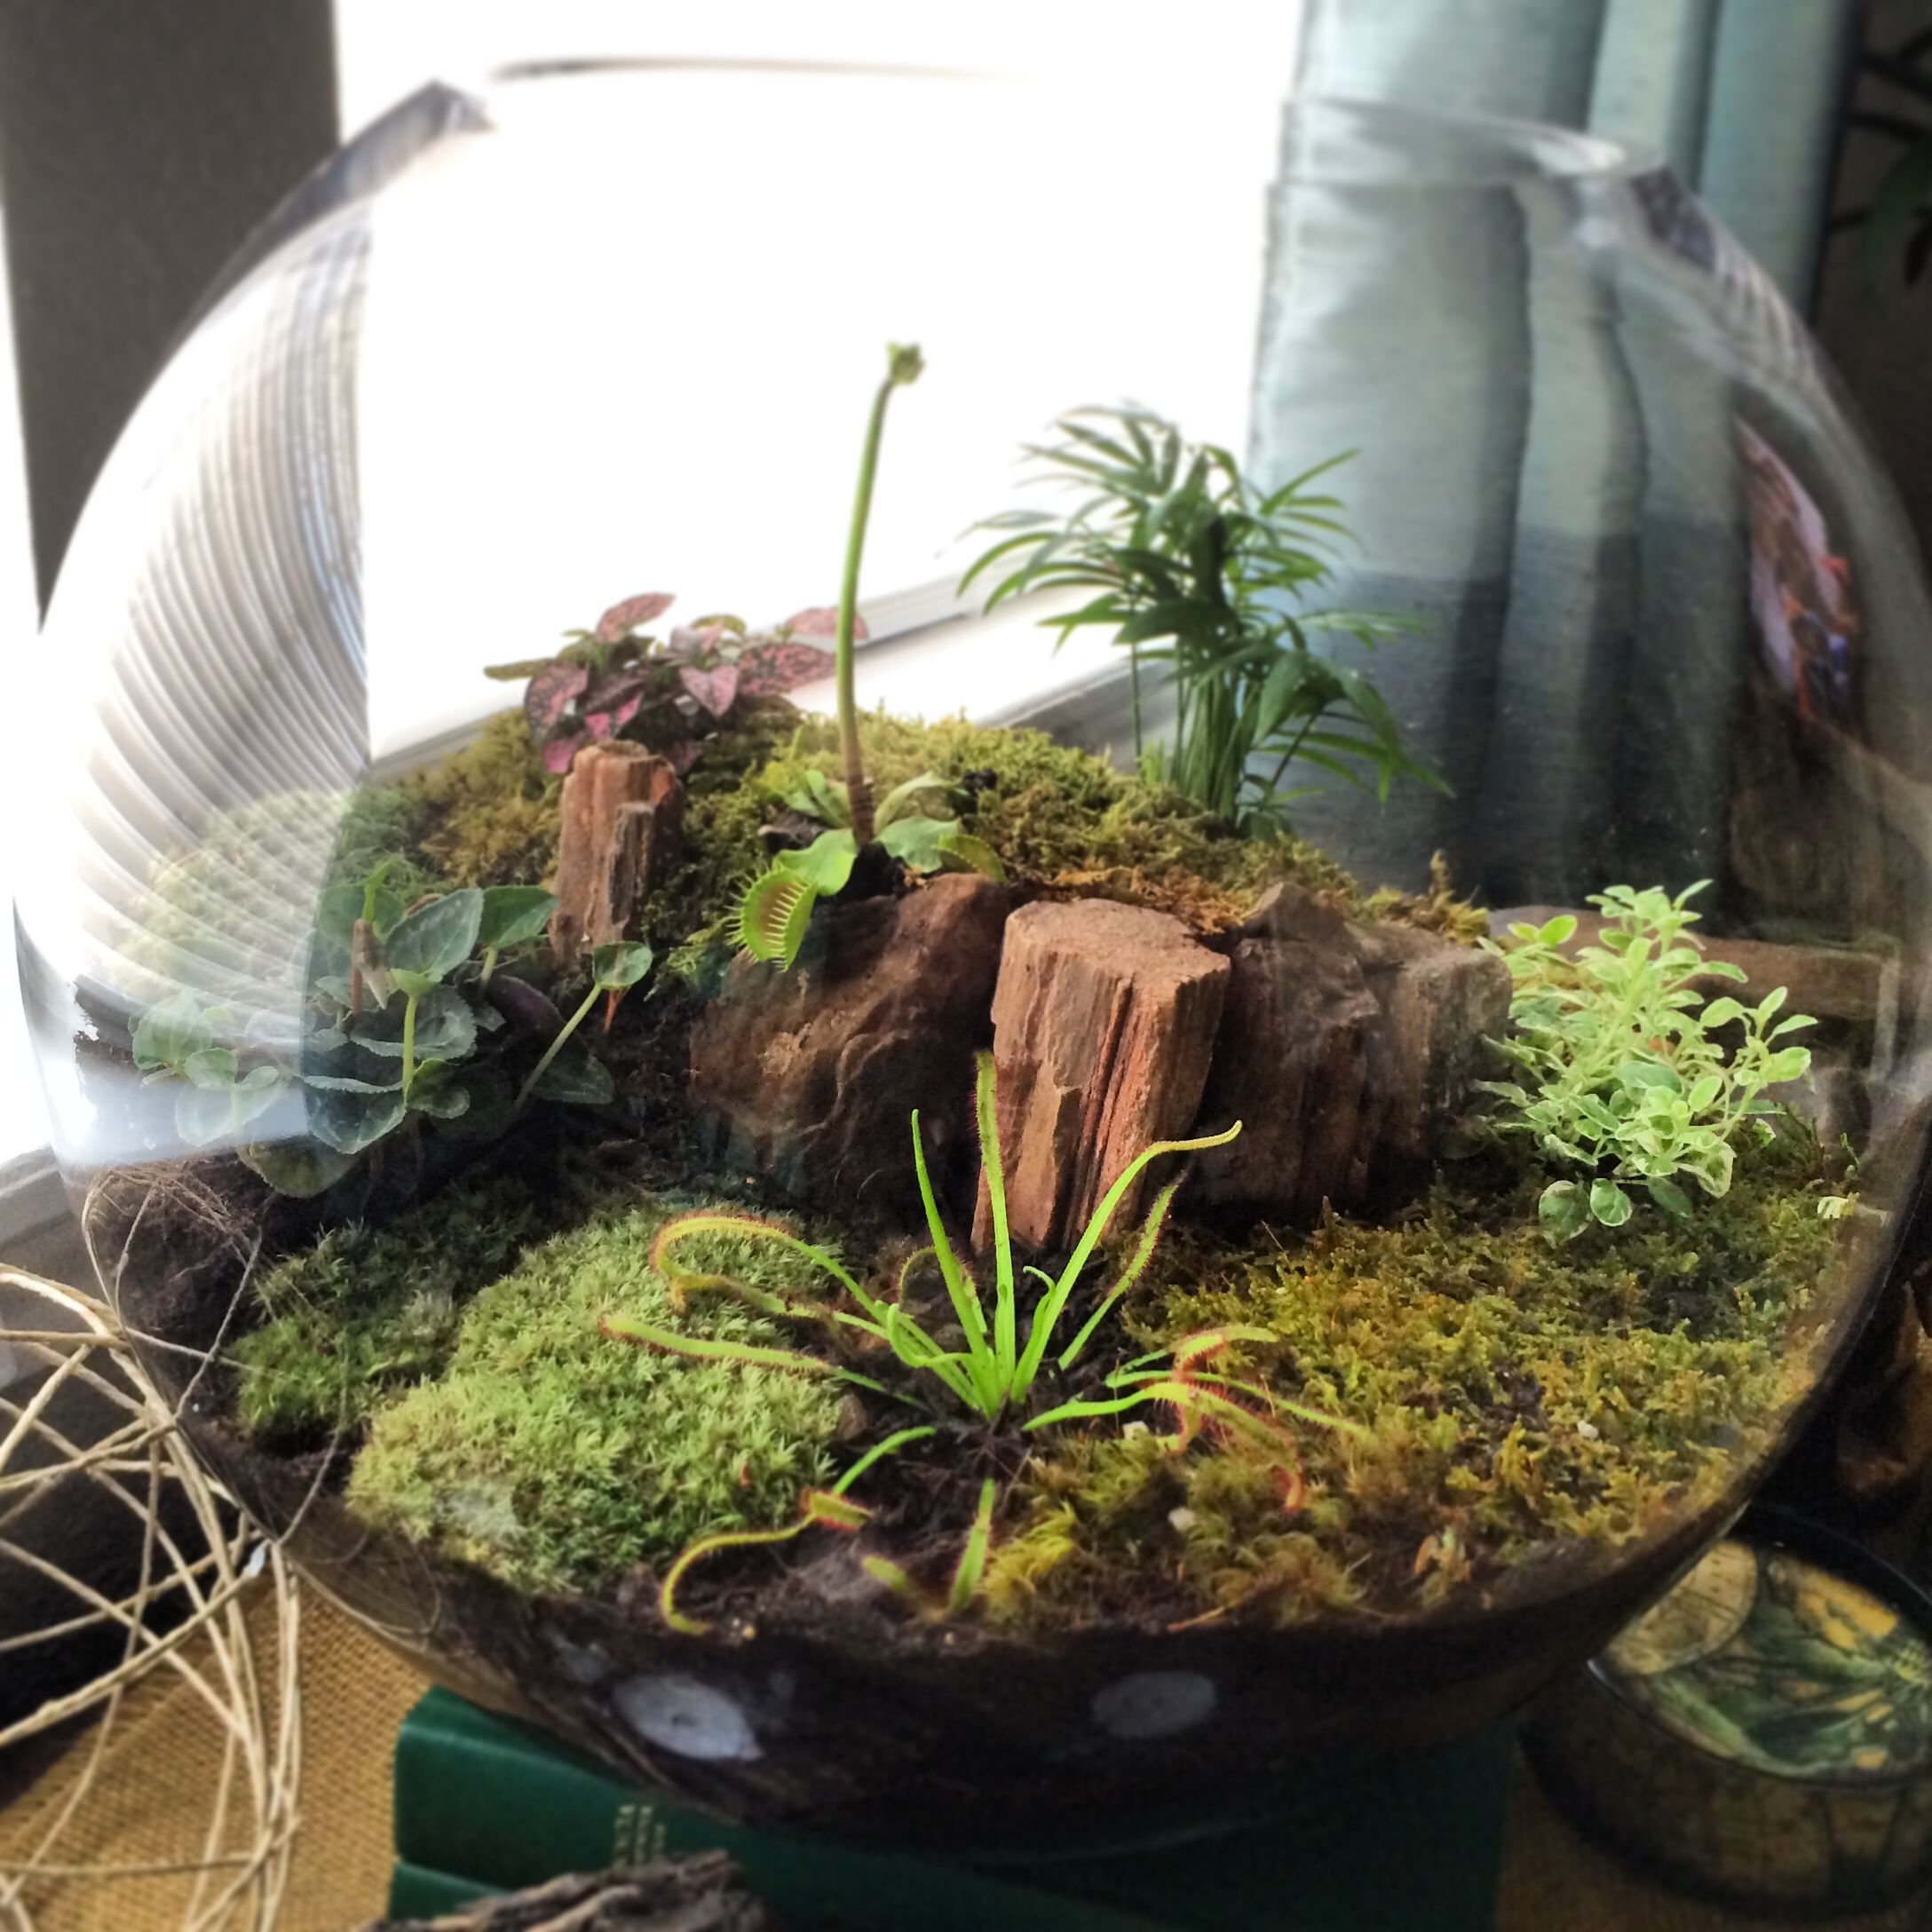 Diy terrarium bottom layer about inches gravel second add thin